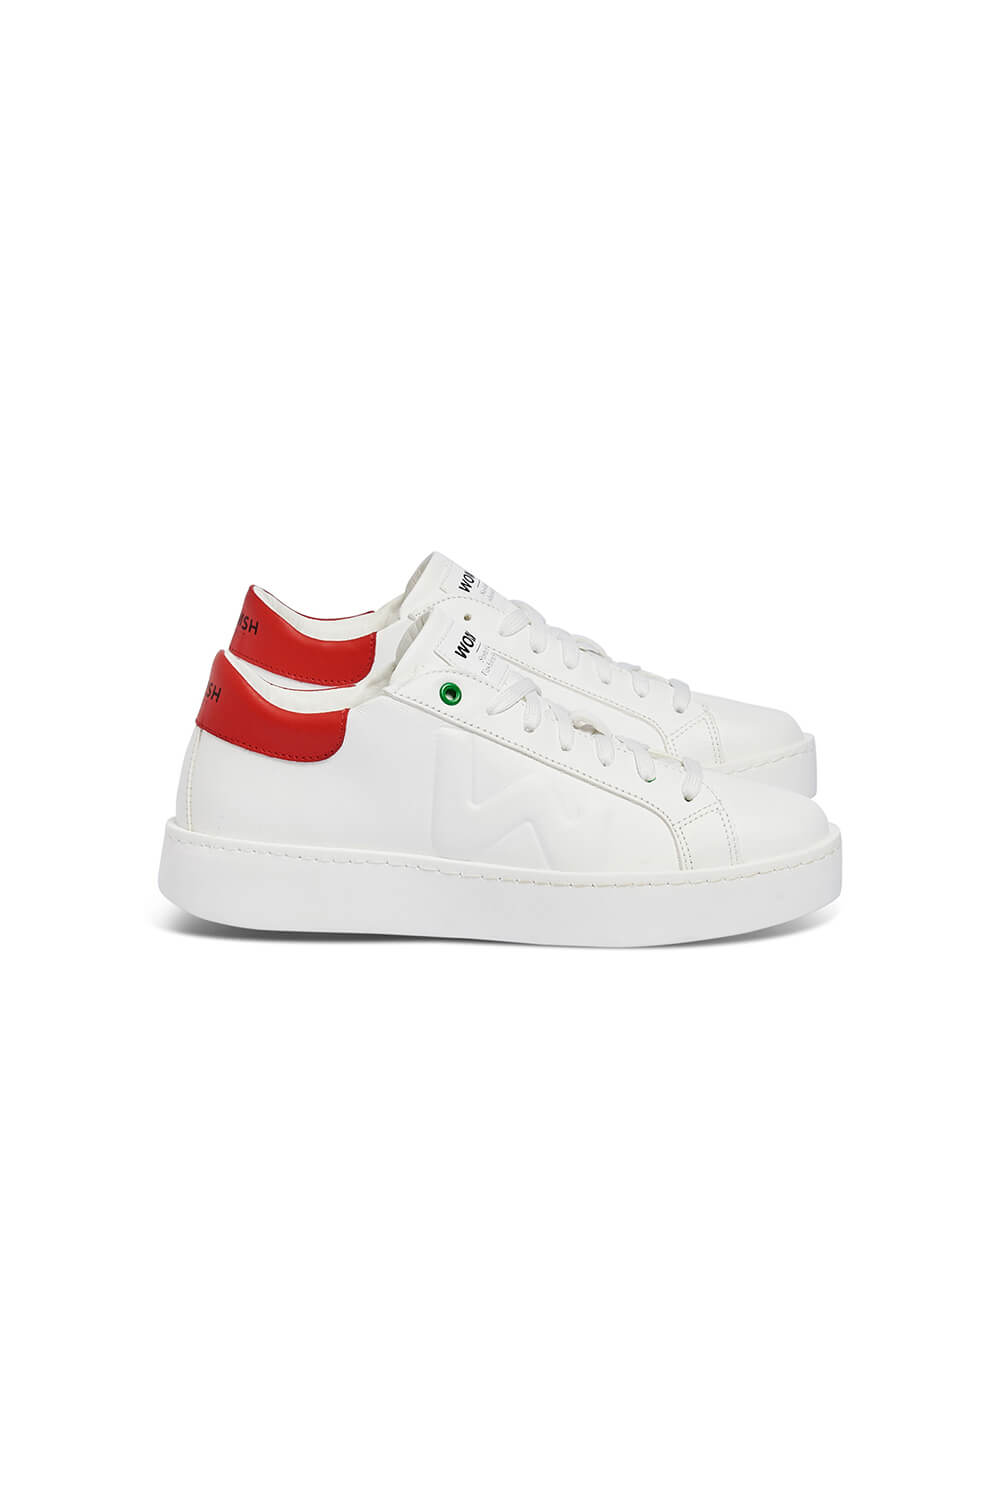 WOMSH Sneakers CONCEPT in white and red leather